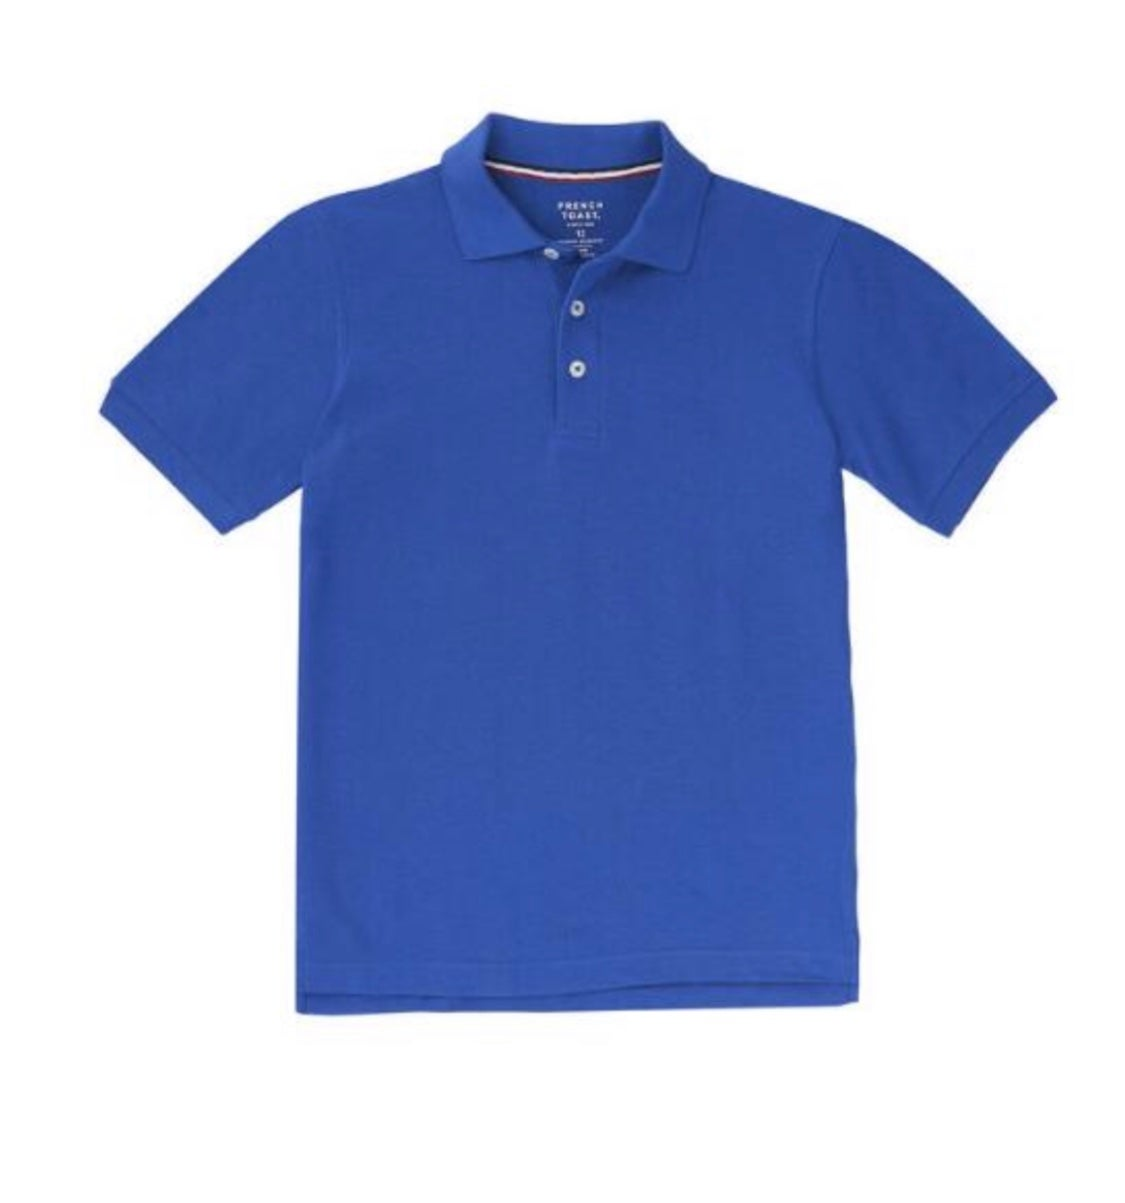 Image of Boys French Toast Short Sleeve Pique Polo - Royal